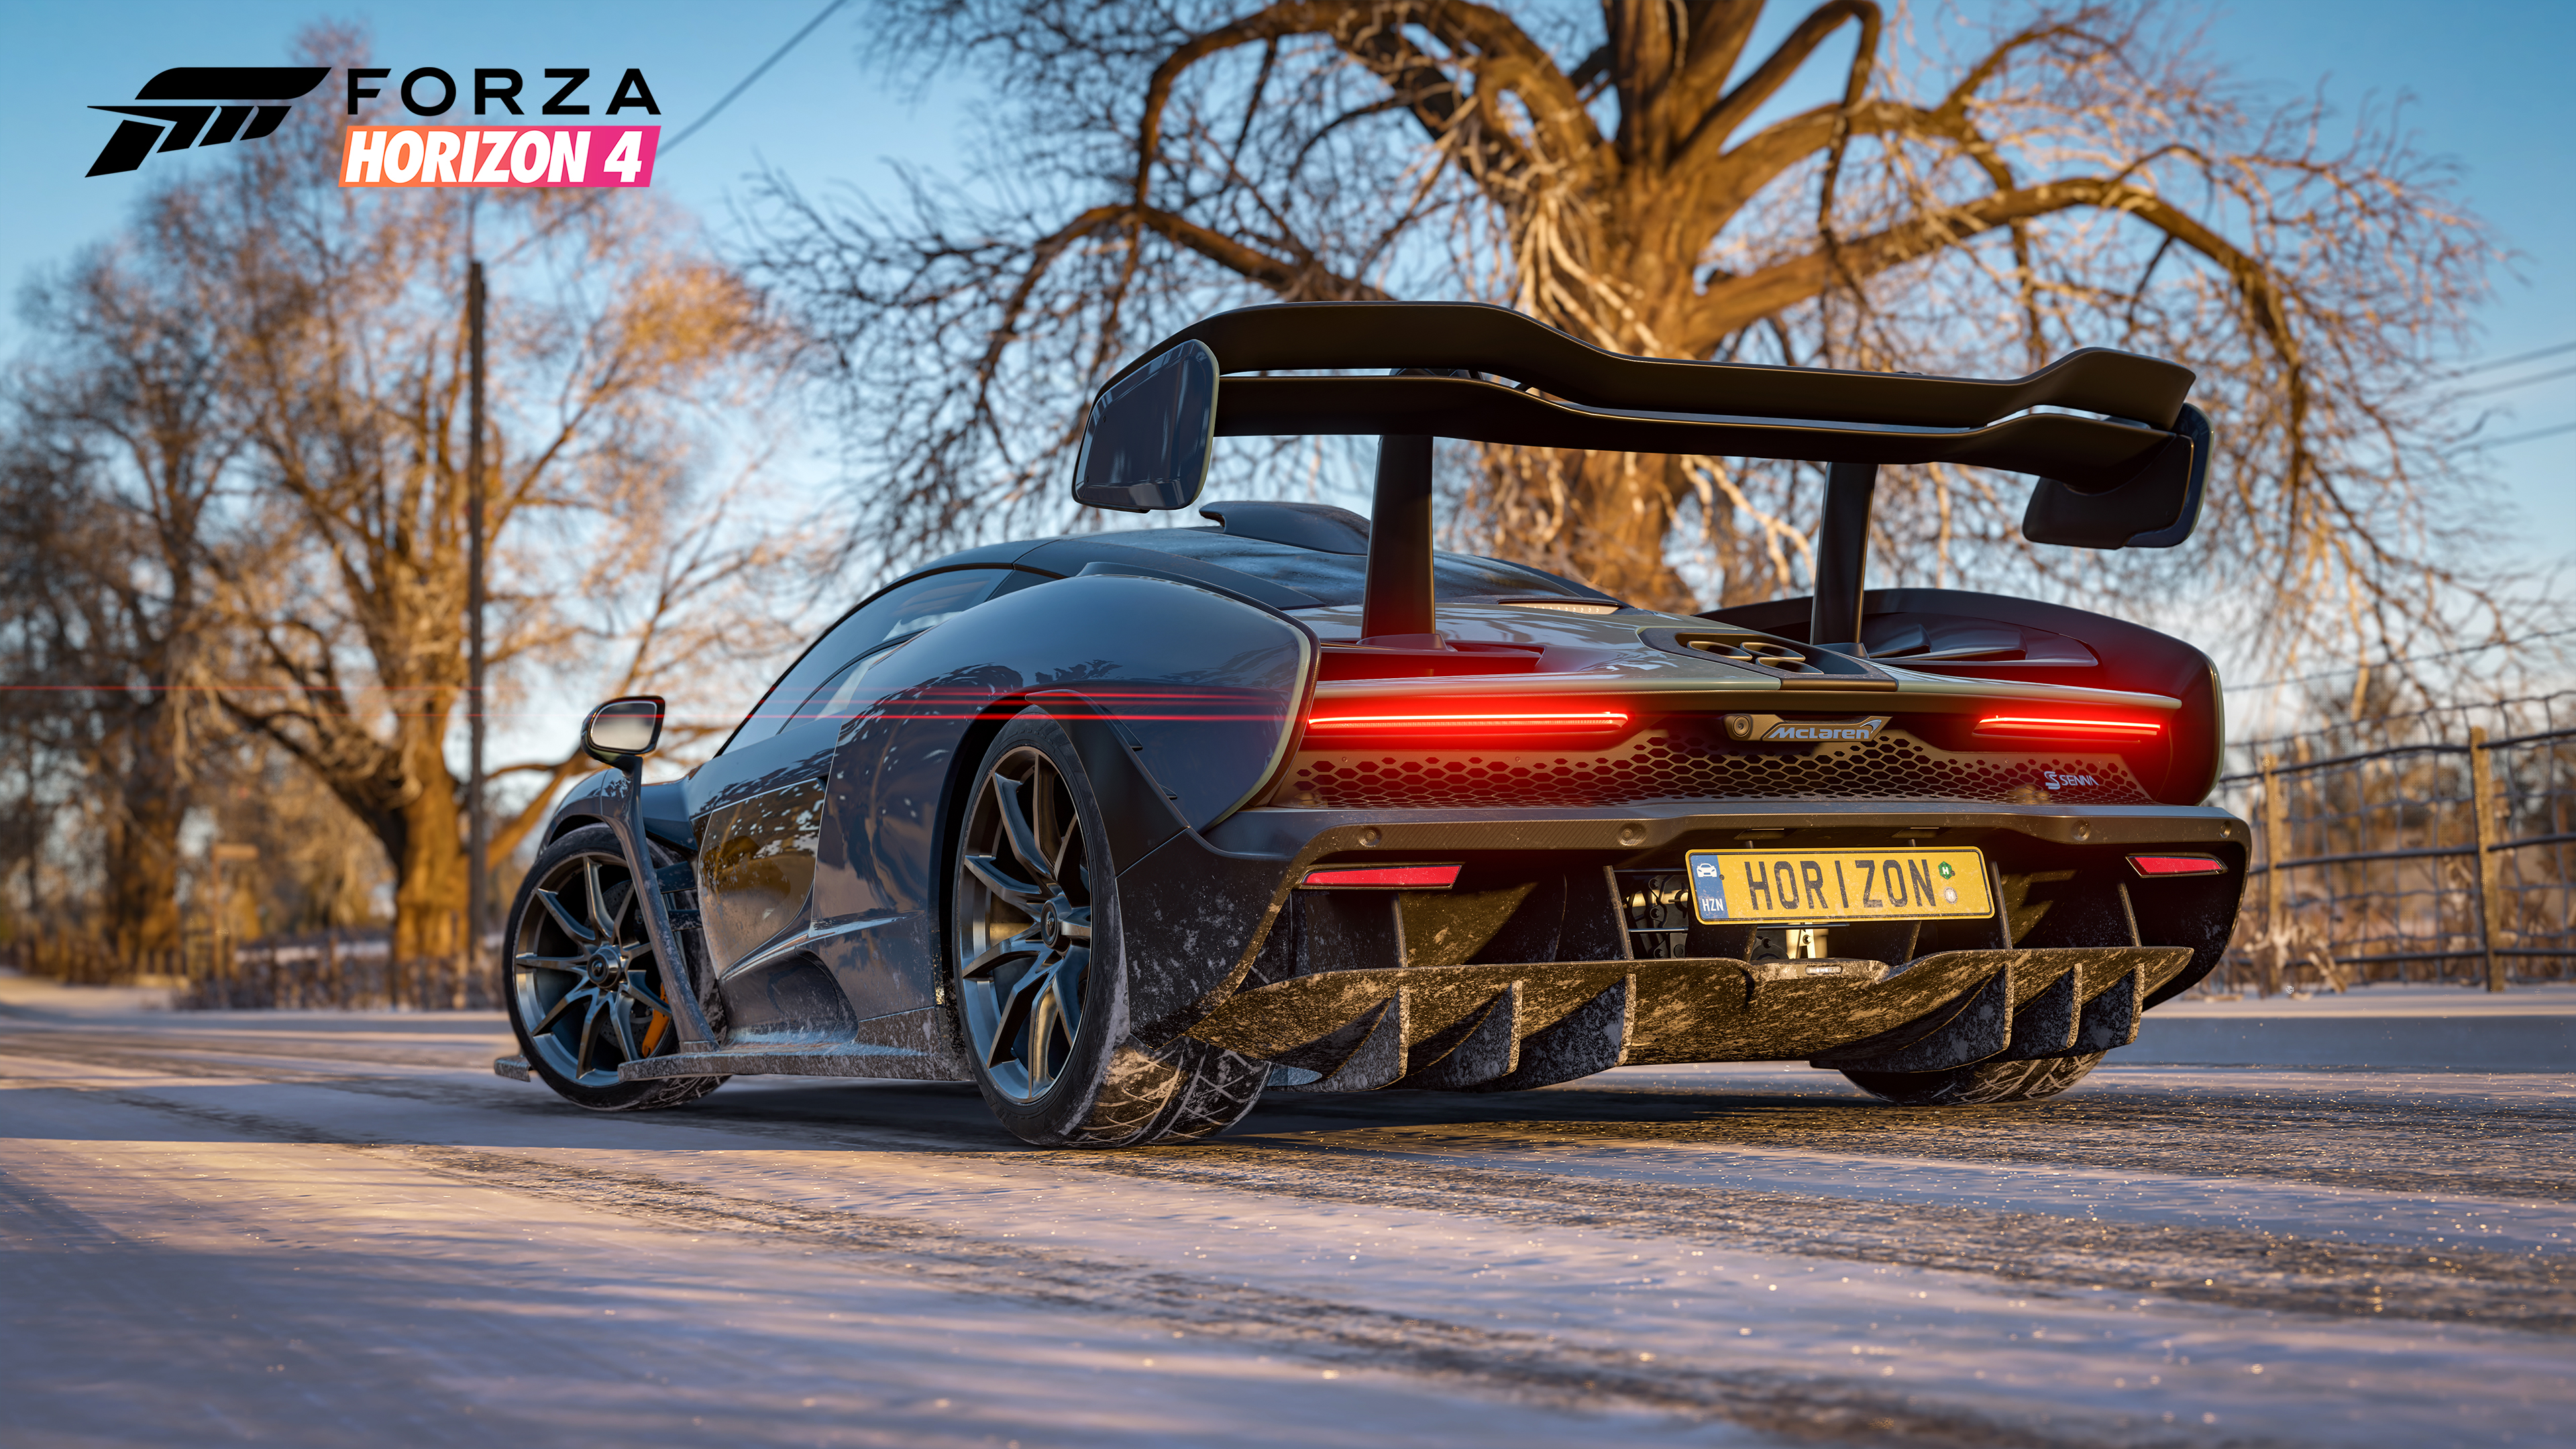 forza horizon 4 pc download codex